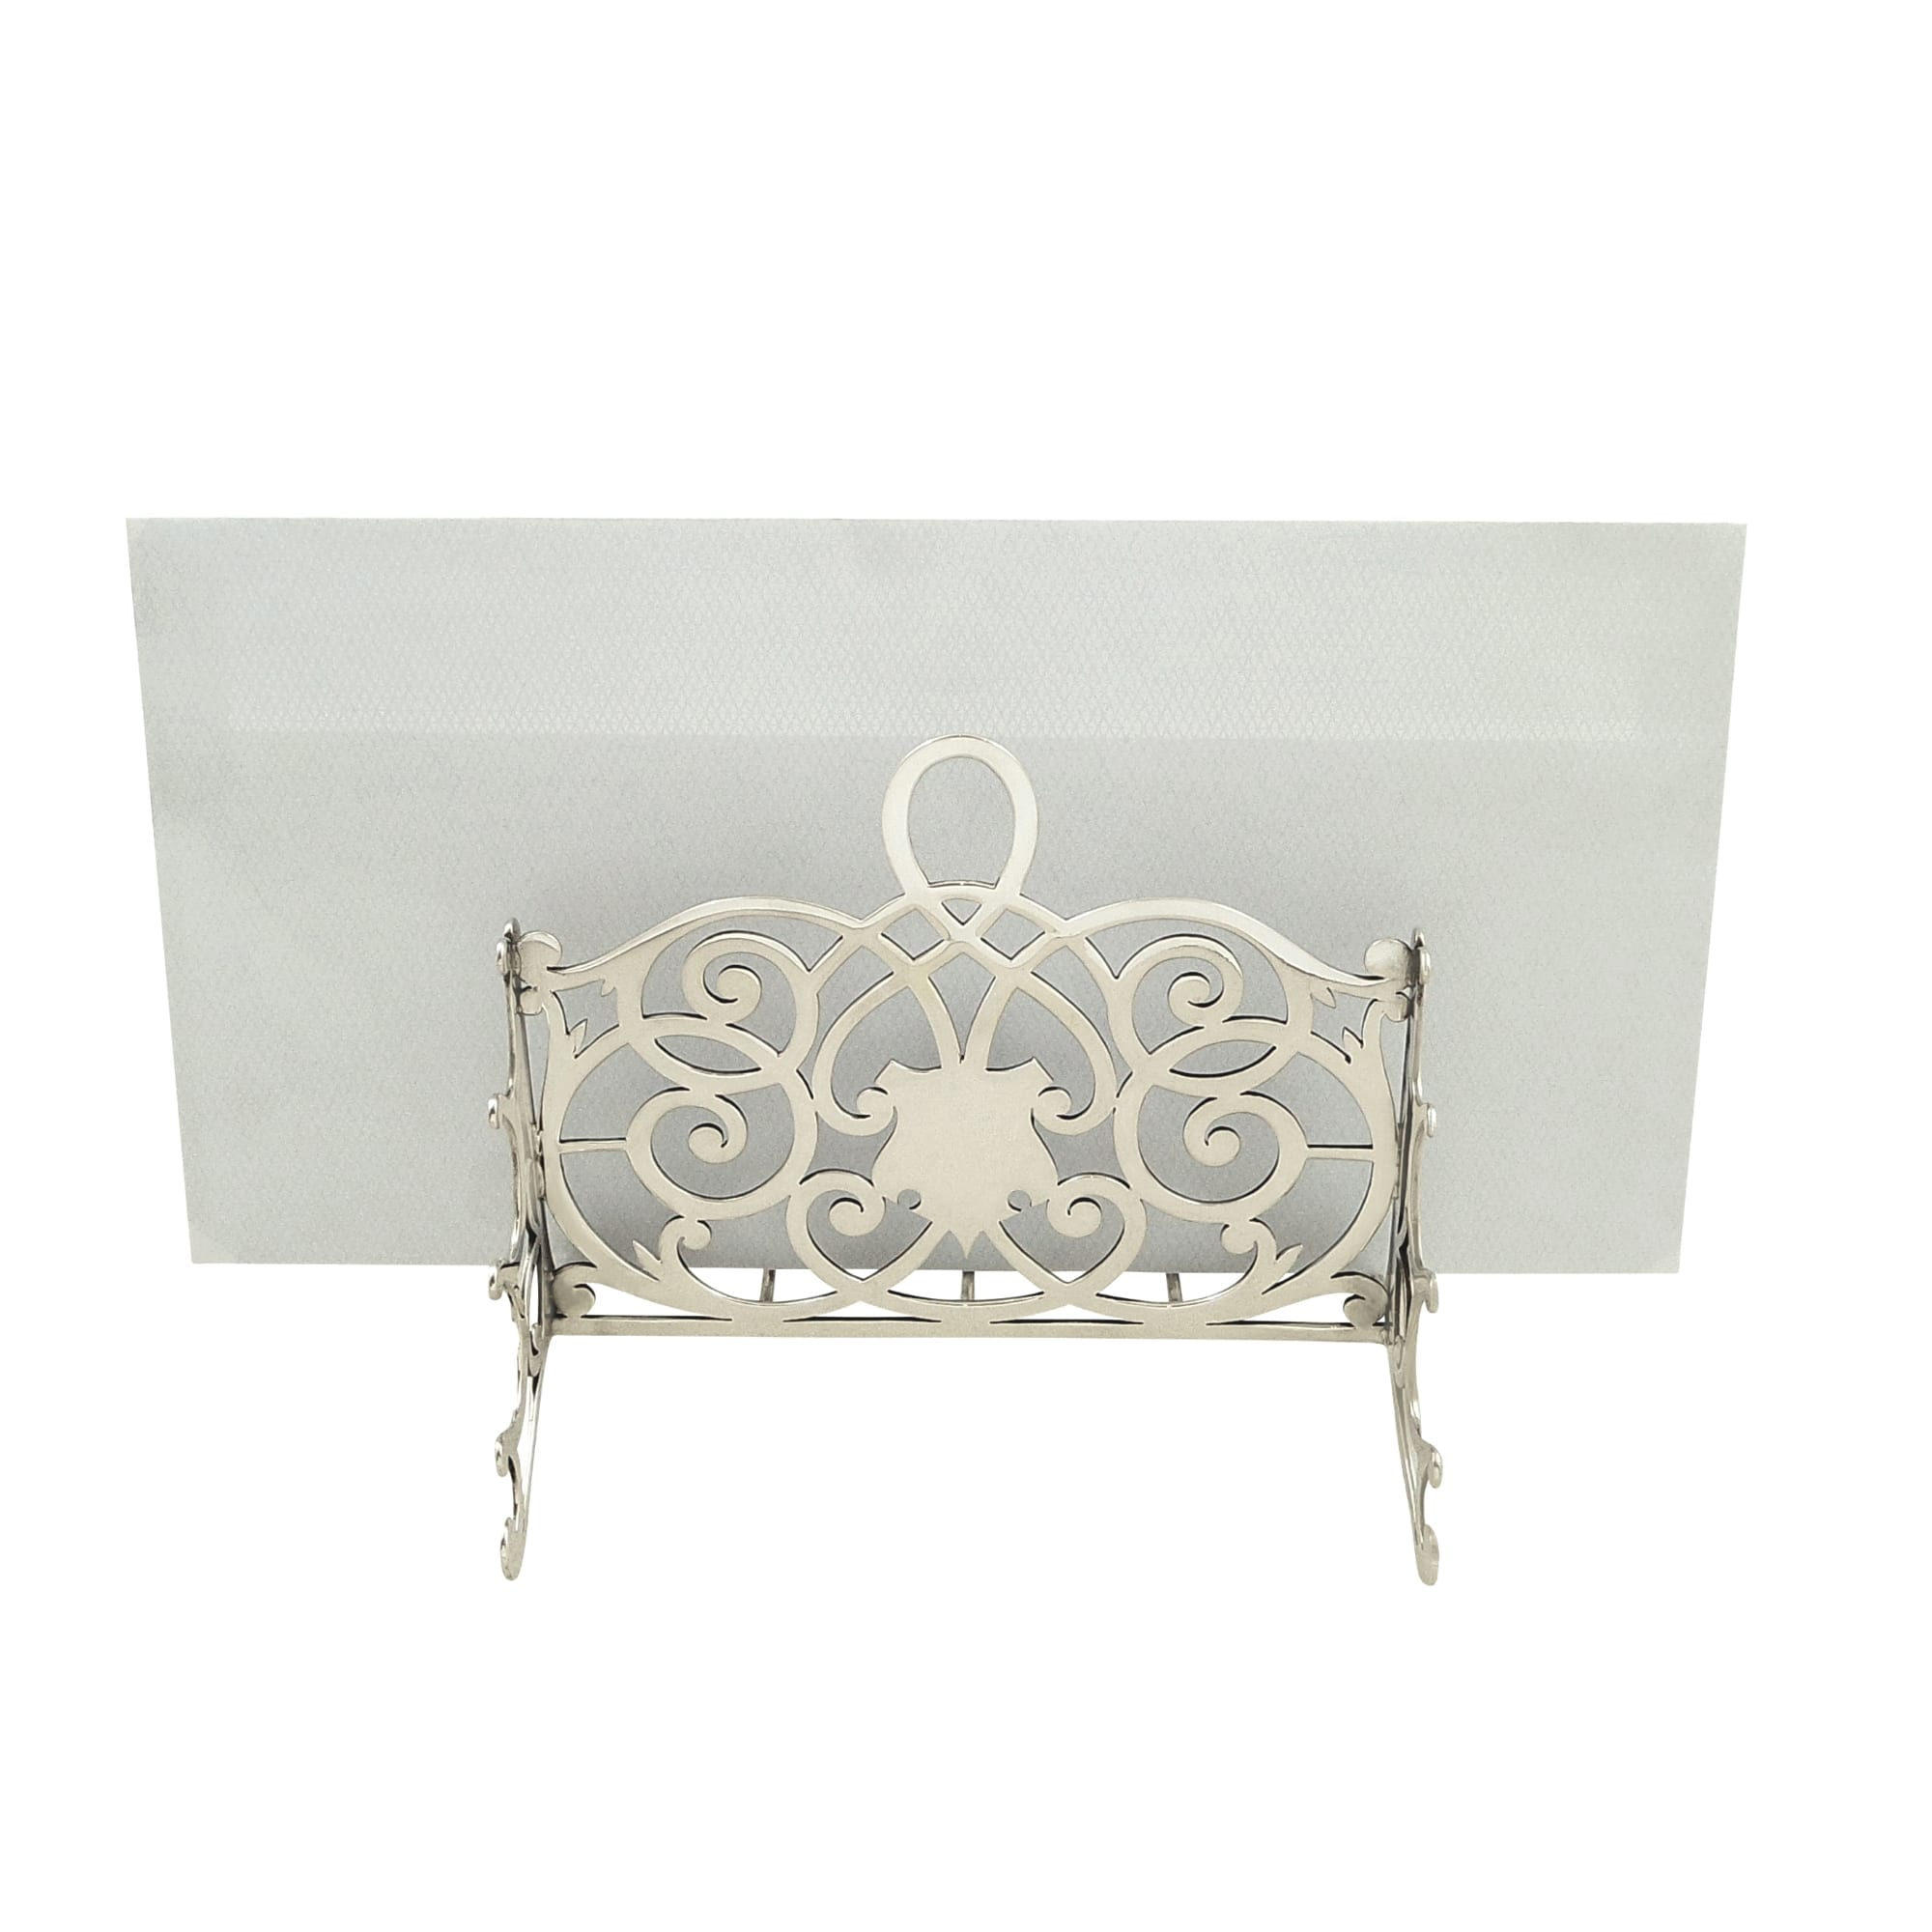 Antique Edwardian Sterling Silver Letter Rack 1904